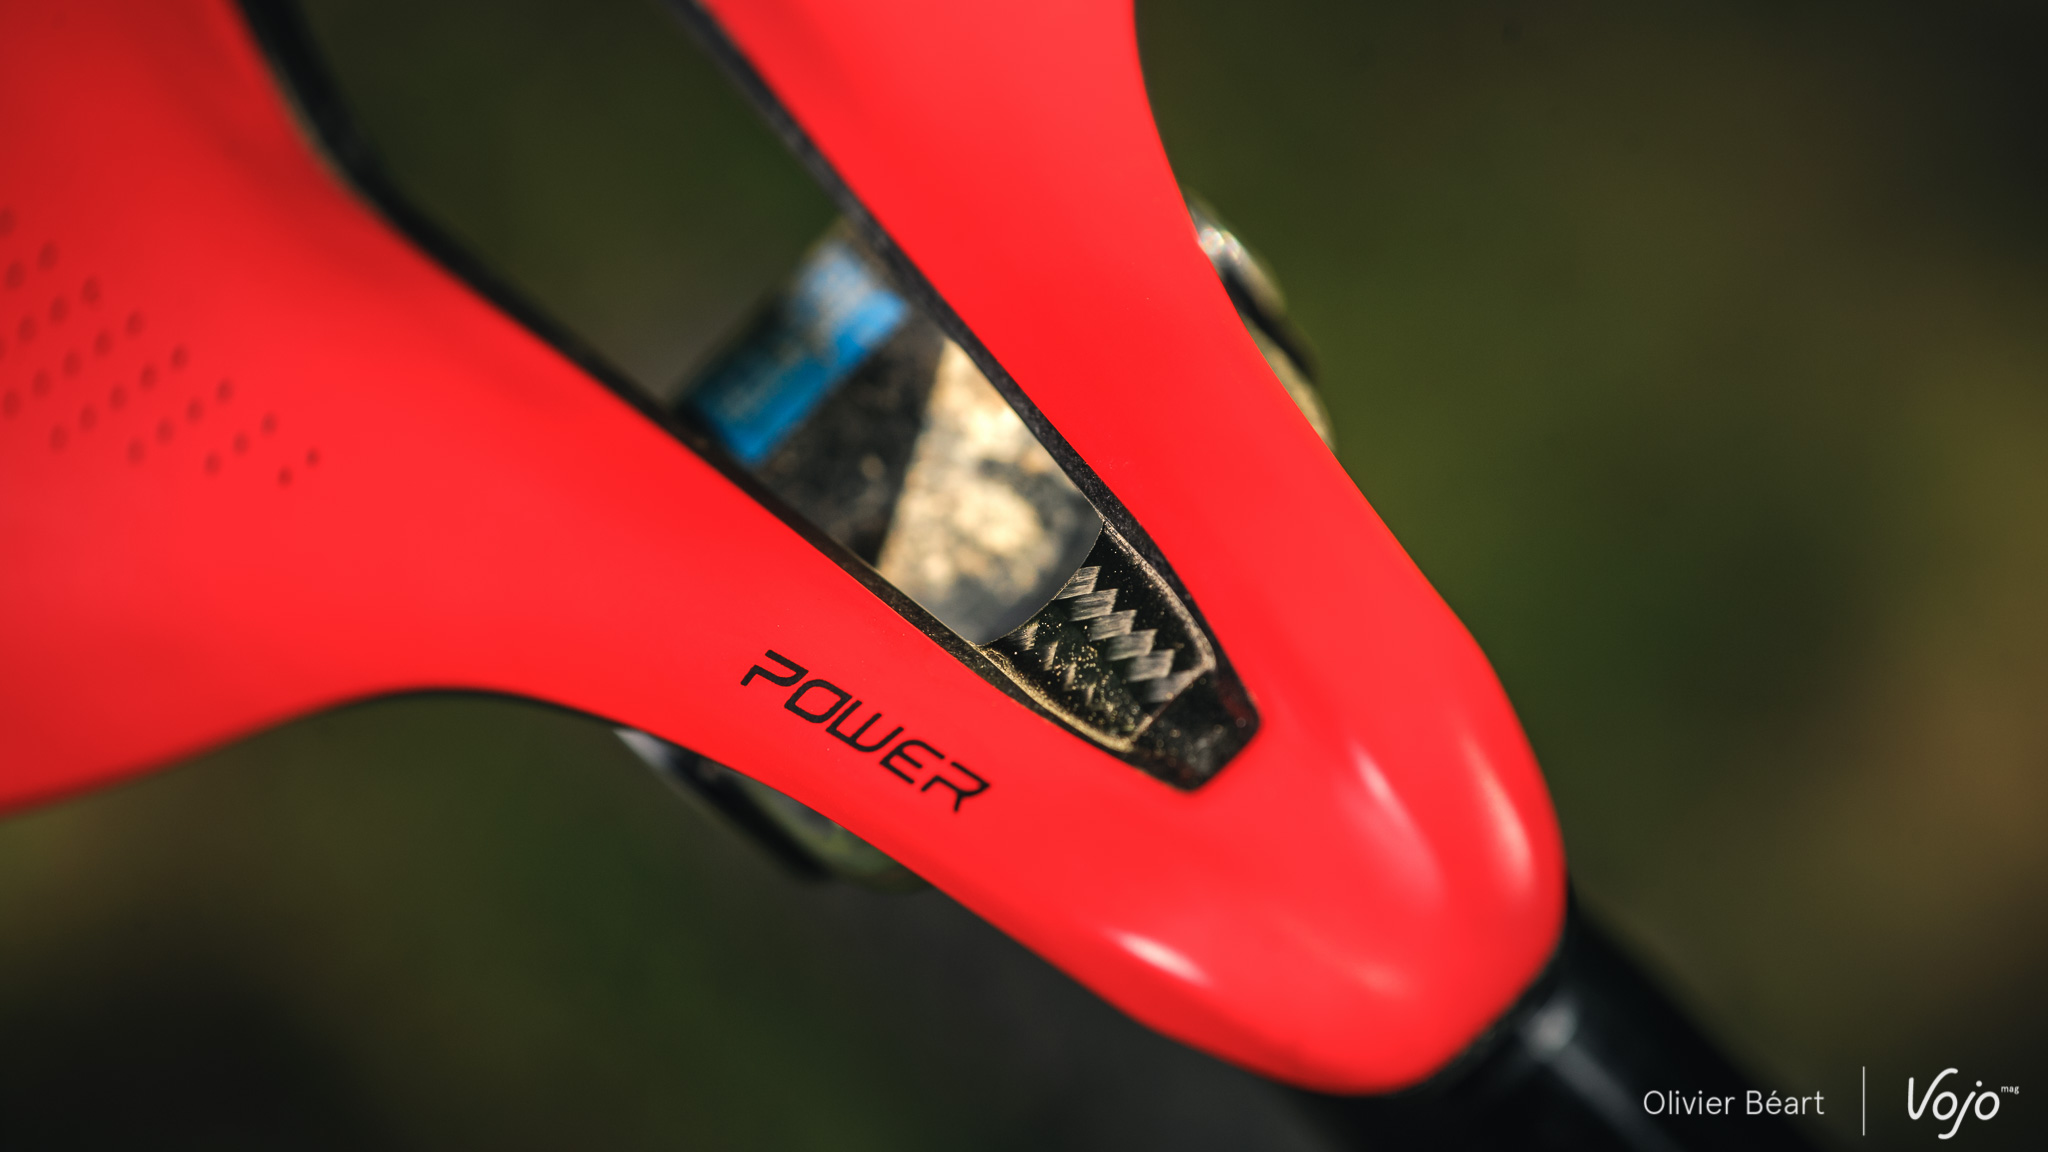 Selle_Specialized_Power_test_Copyright_OBeart_VojoMag-11